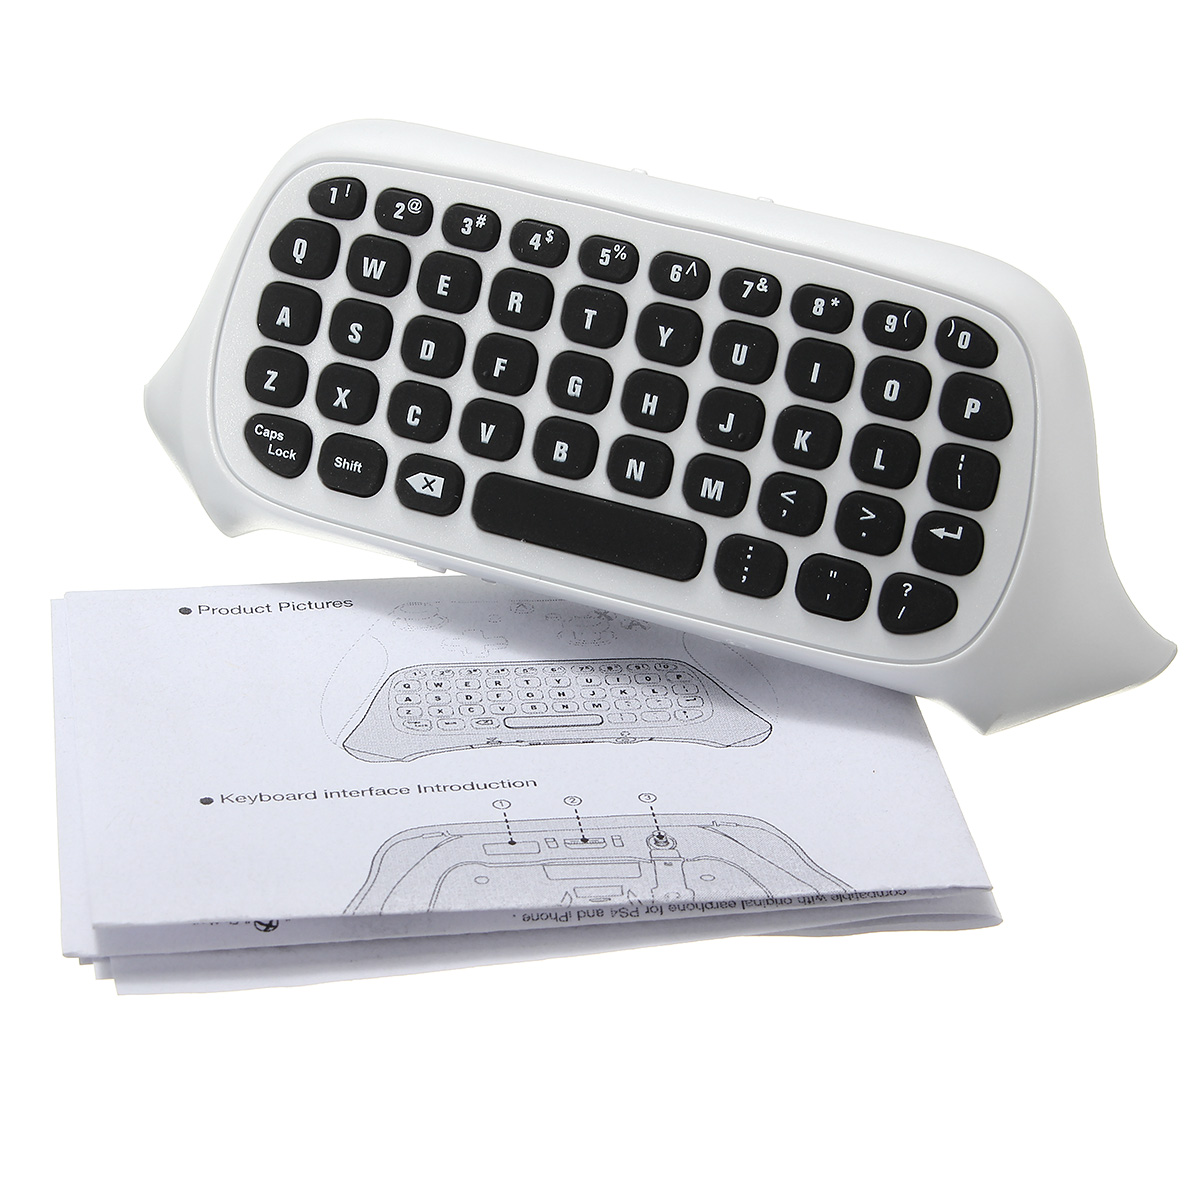 2.4G Wireless 47 Keys MINI Keyboard Chatpad Message Text Keyboard For Xbox One S Slim Controller